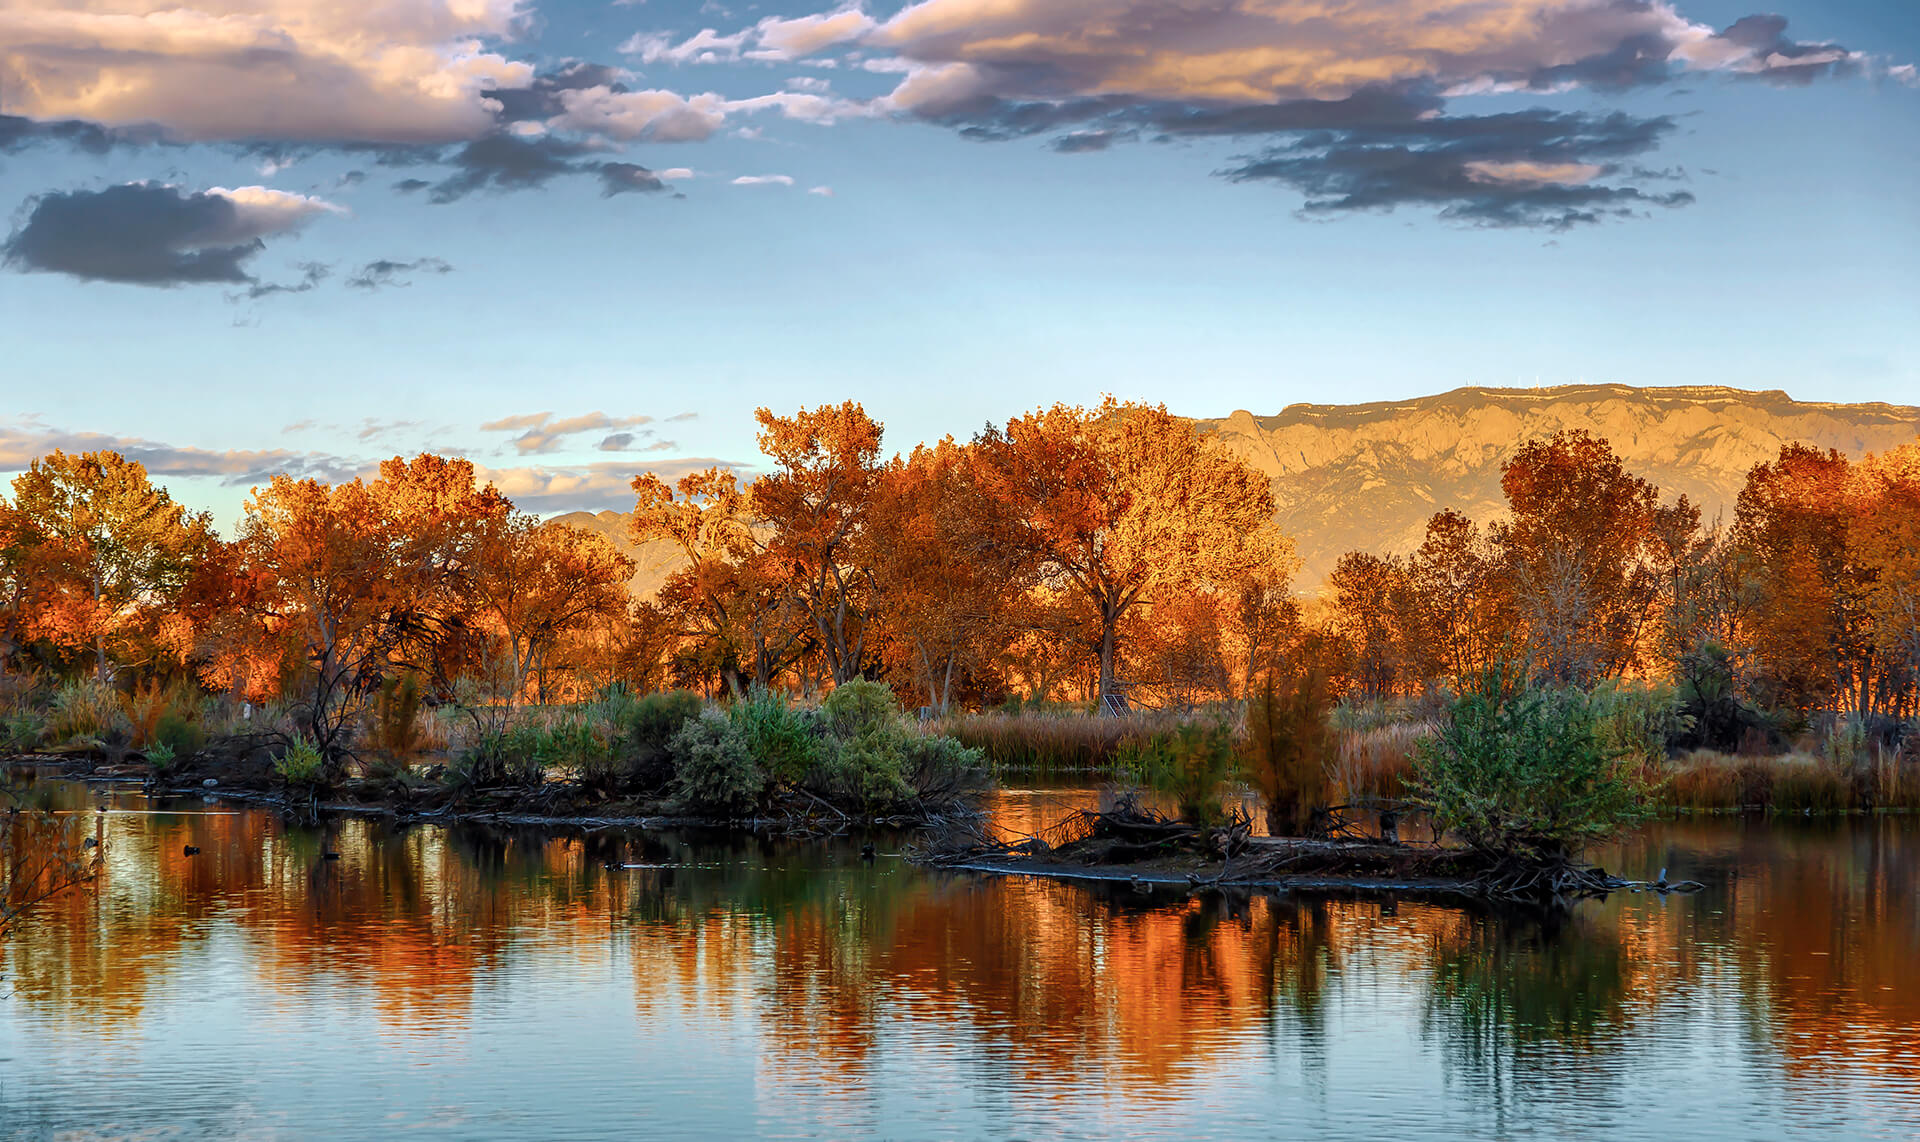 Fall in the Rio Grande Bosque - Photo by Grant Condit